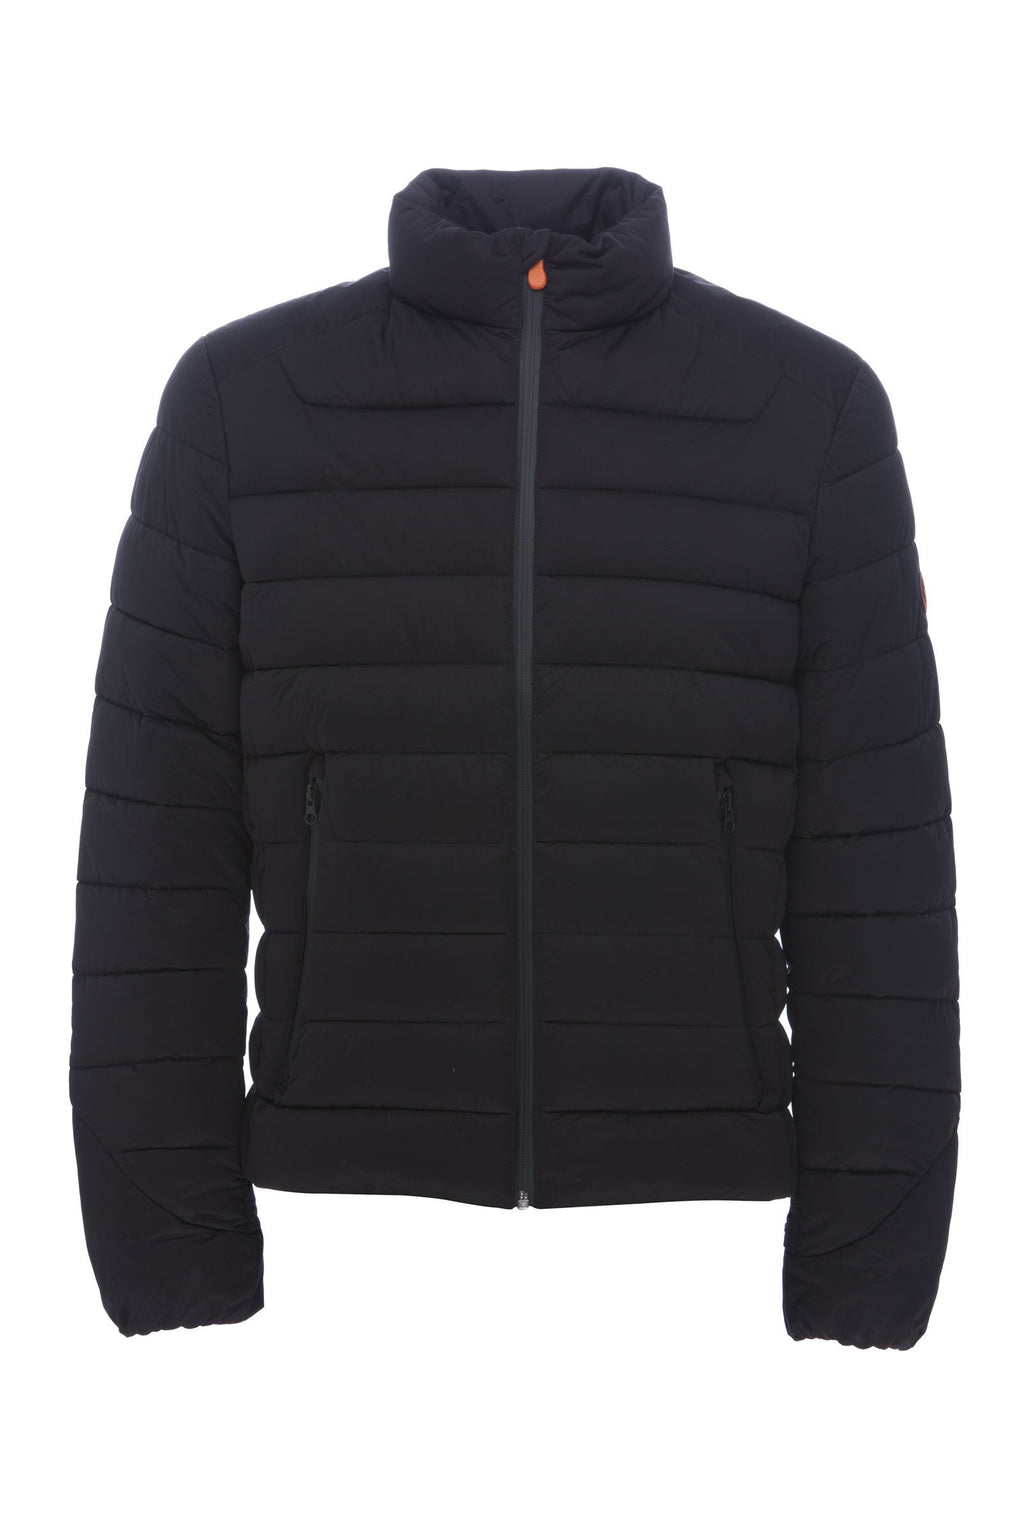 MANCINO TAILORS Save the Duck Men's Stretch Puffer Coat